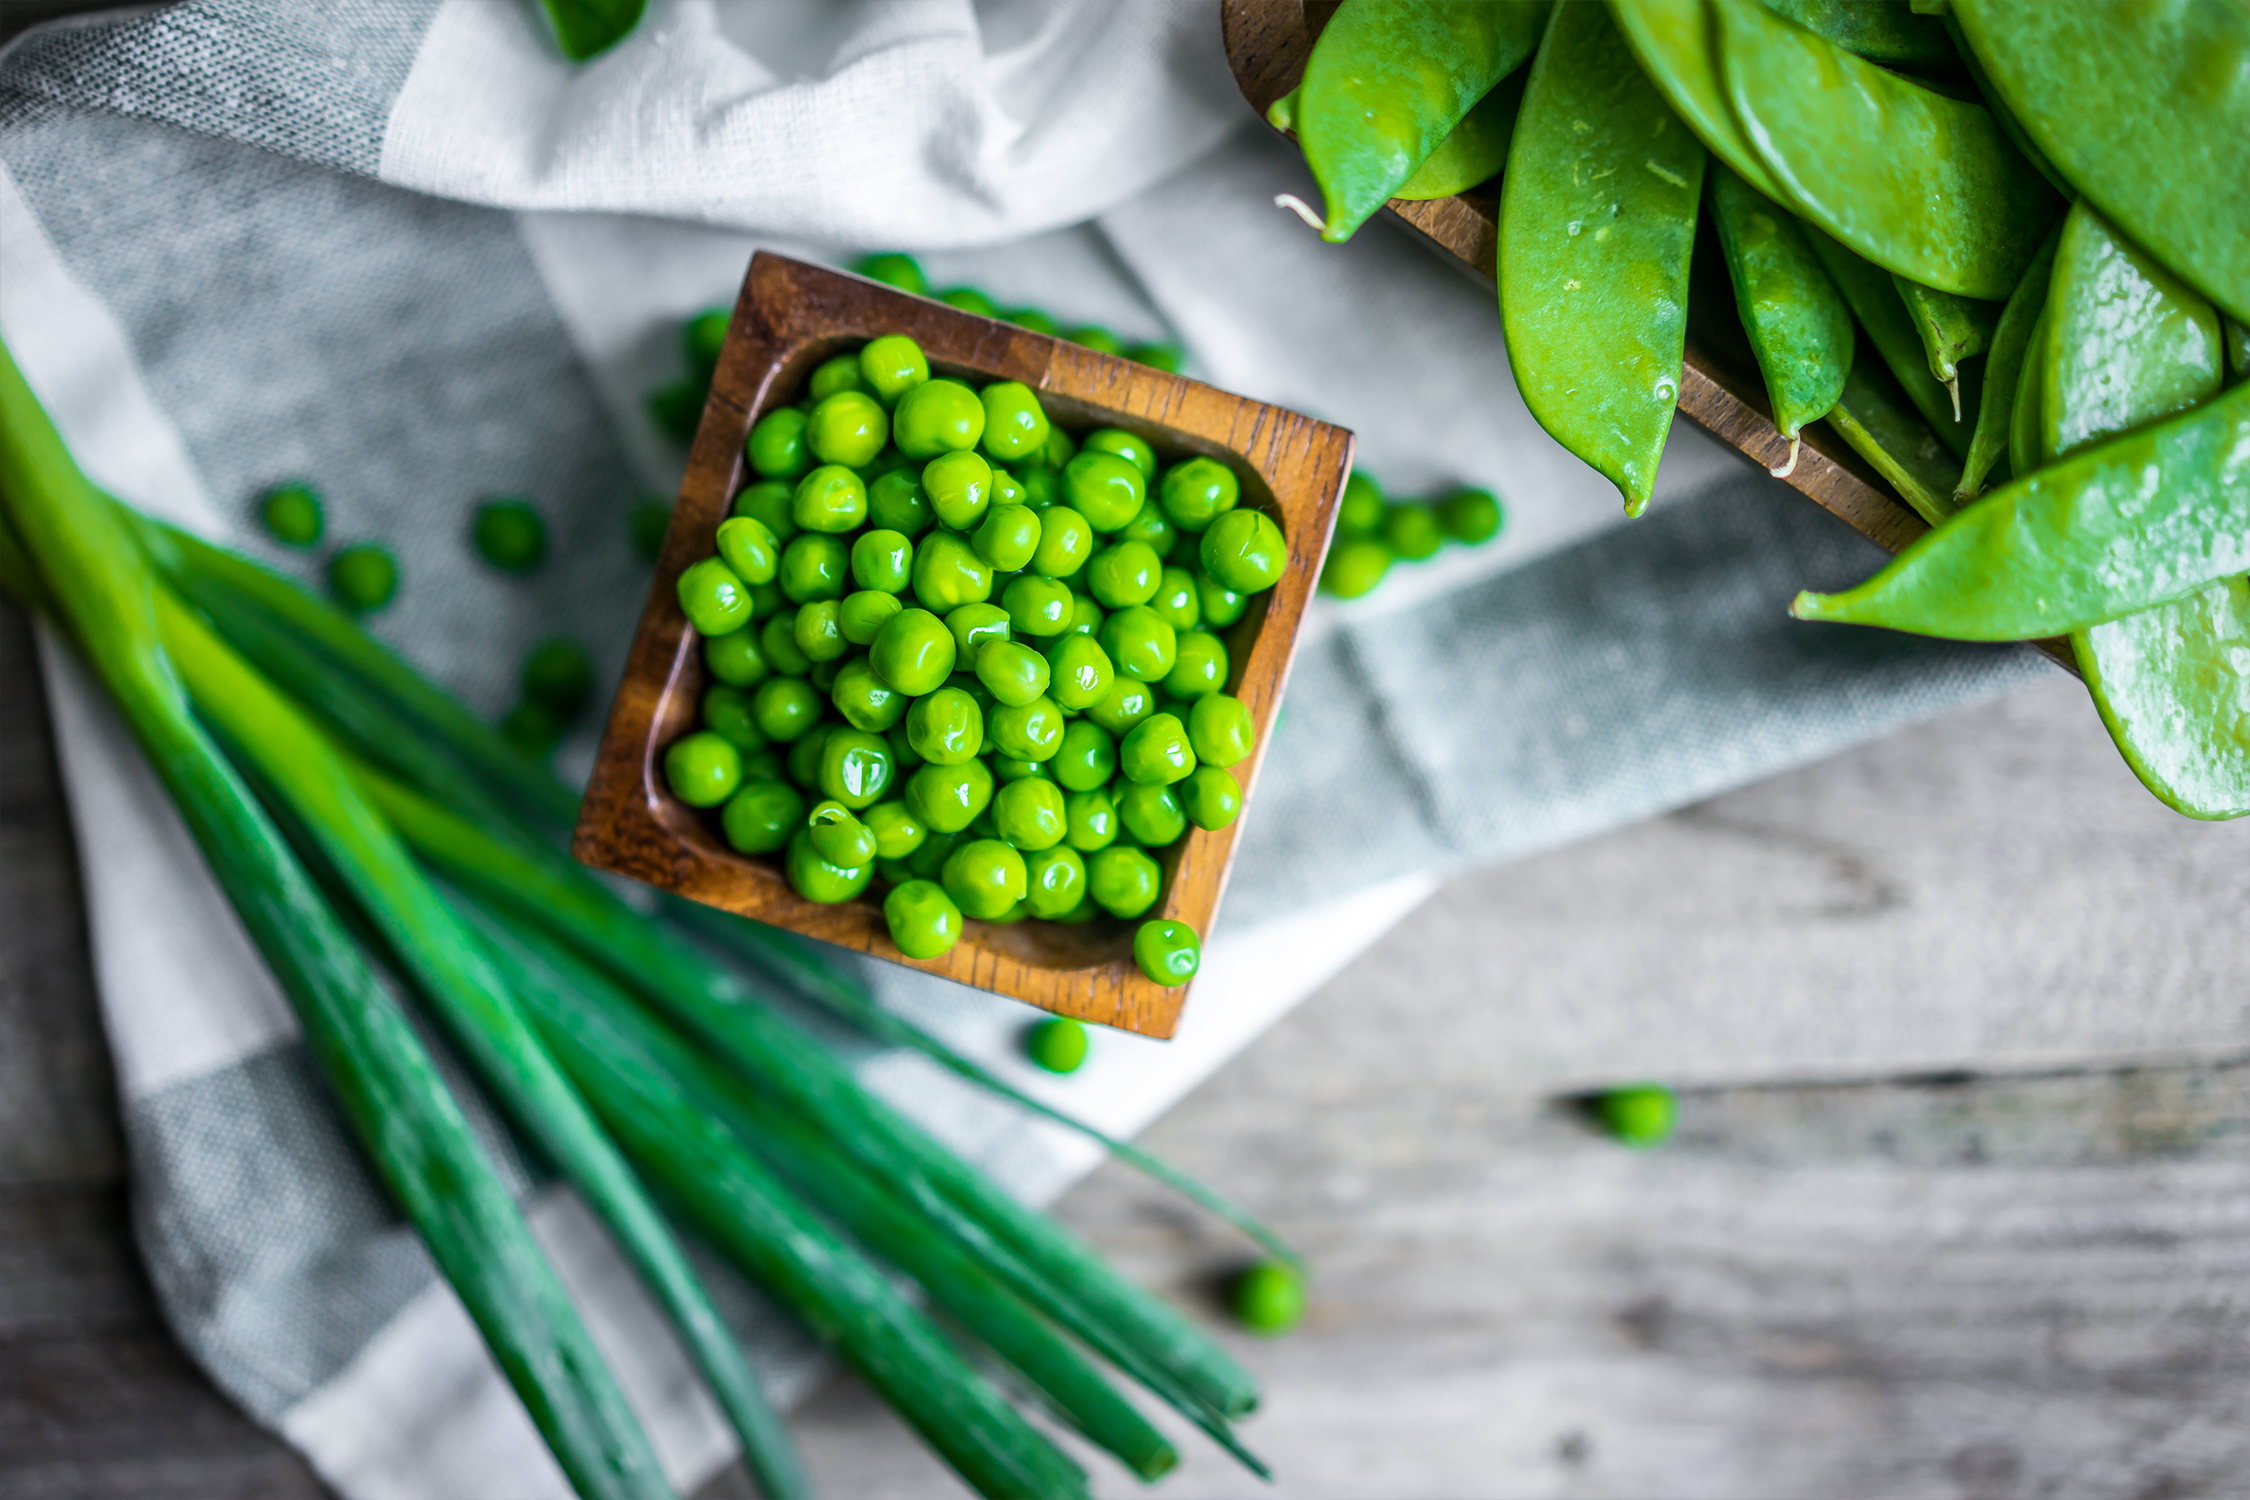 Beans & Peas - (4-10 mos.) *Dependent on varietyAdd peas or beans, known as legumes, to any family dinner for a powerful punch of nutrition. A robust source of carbohydrates, protein and fiber, they boost high levels of iron, calcium and B vitamins. Unlike other legumes, green beans are very low in allergens, making them a desirable first food. Low in calories and a great source of fiber, green beans are a welcome addition to any meal. Choose fresh or frozen varieties for a year-round staple of your child's diet.